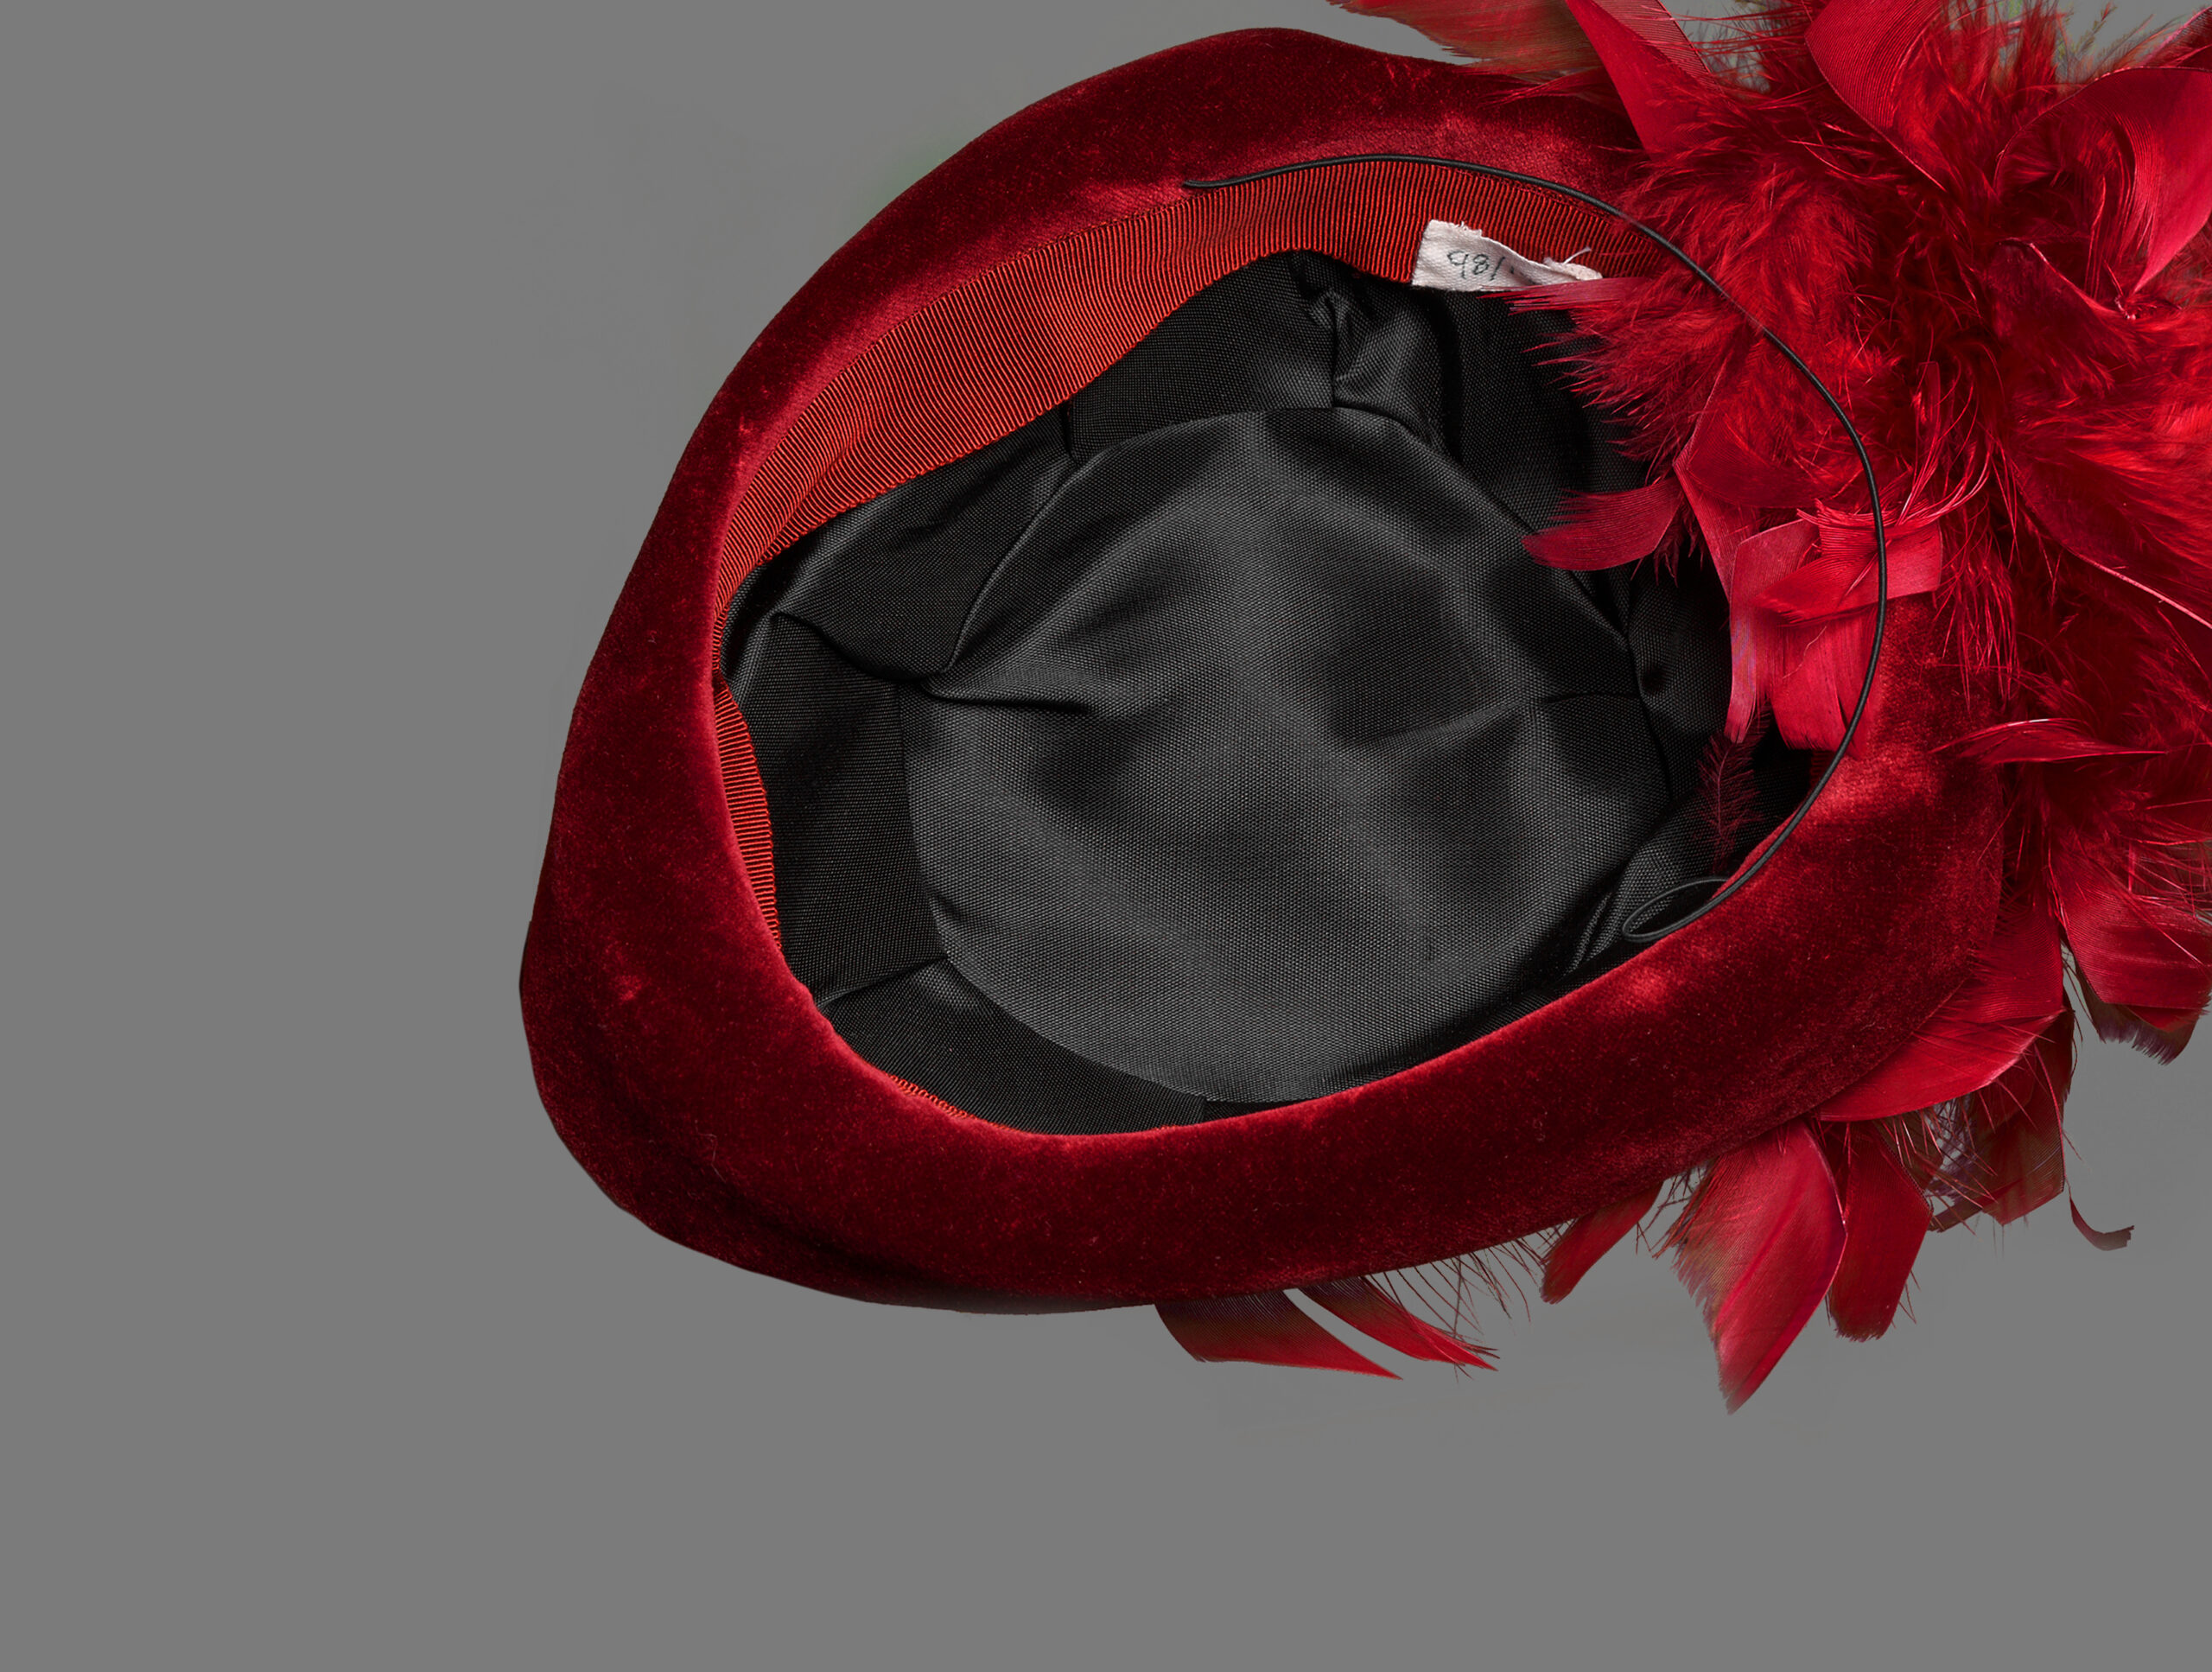 Scarlet - The Museum of Lydia Grace Online Exhibition